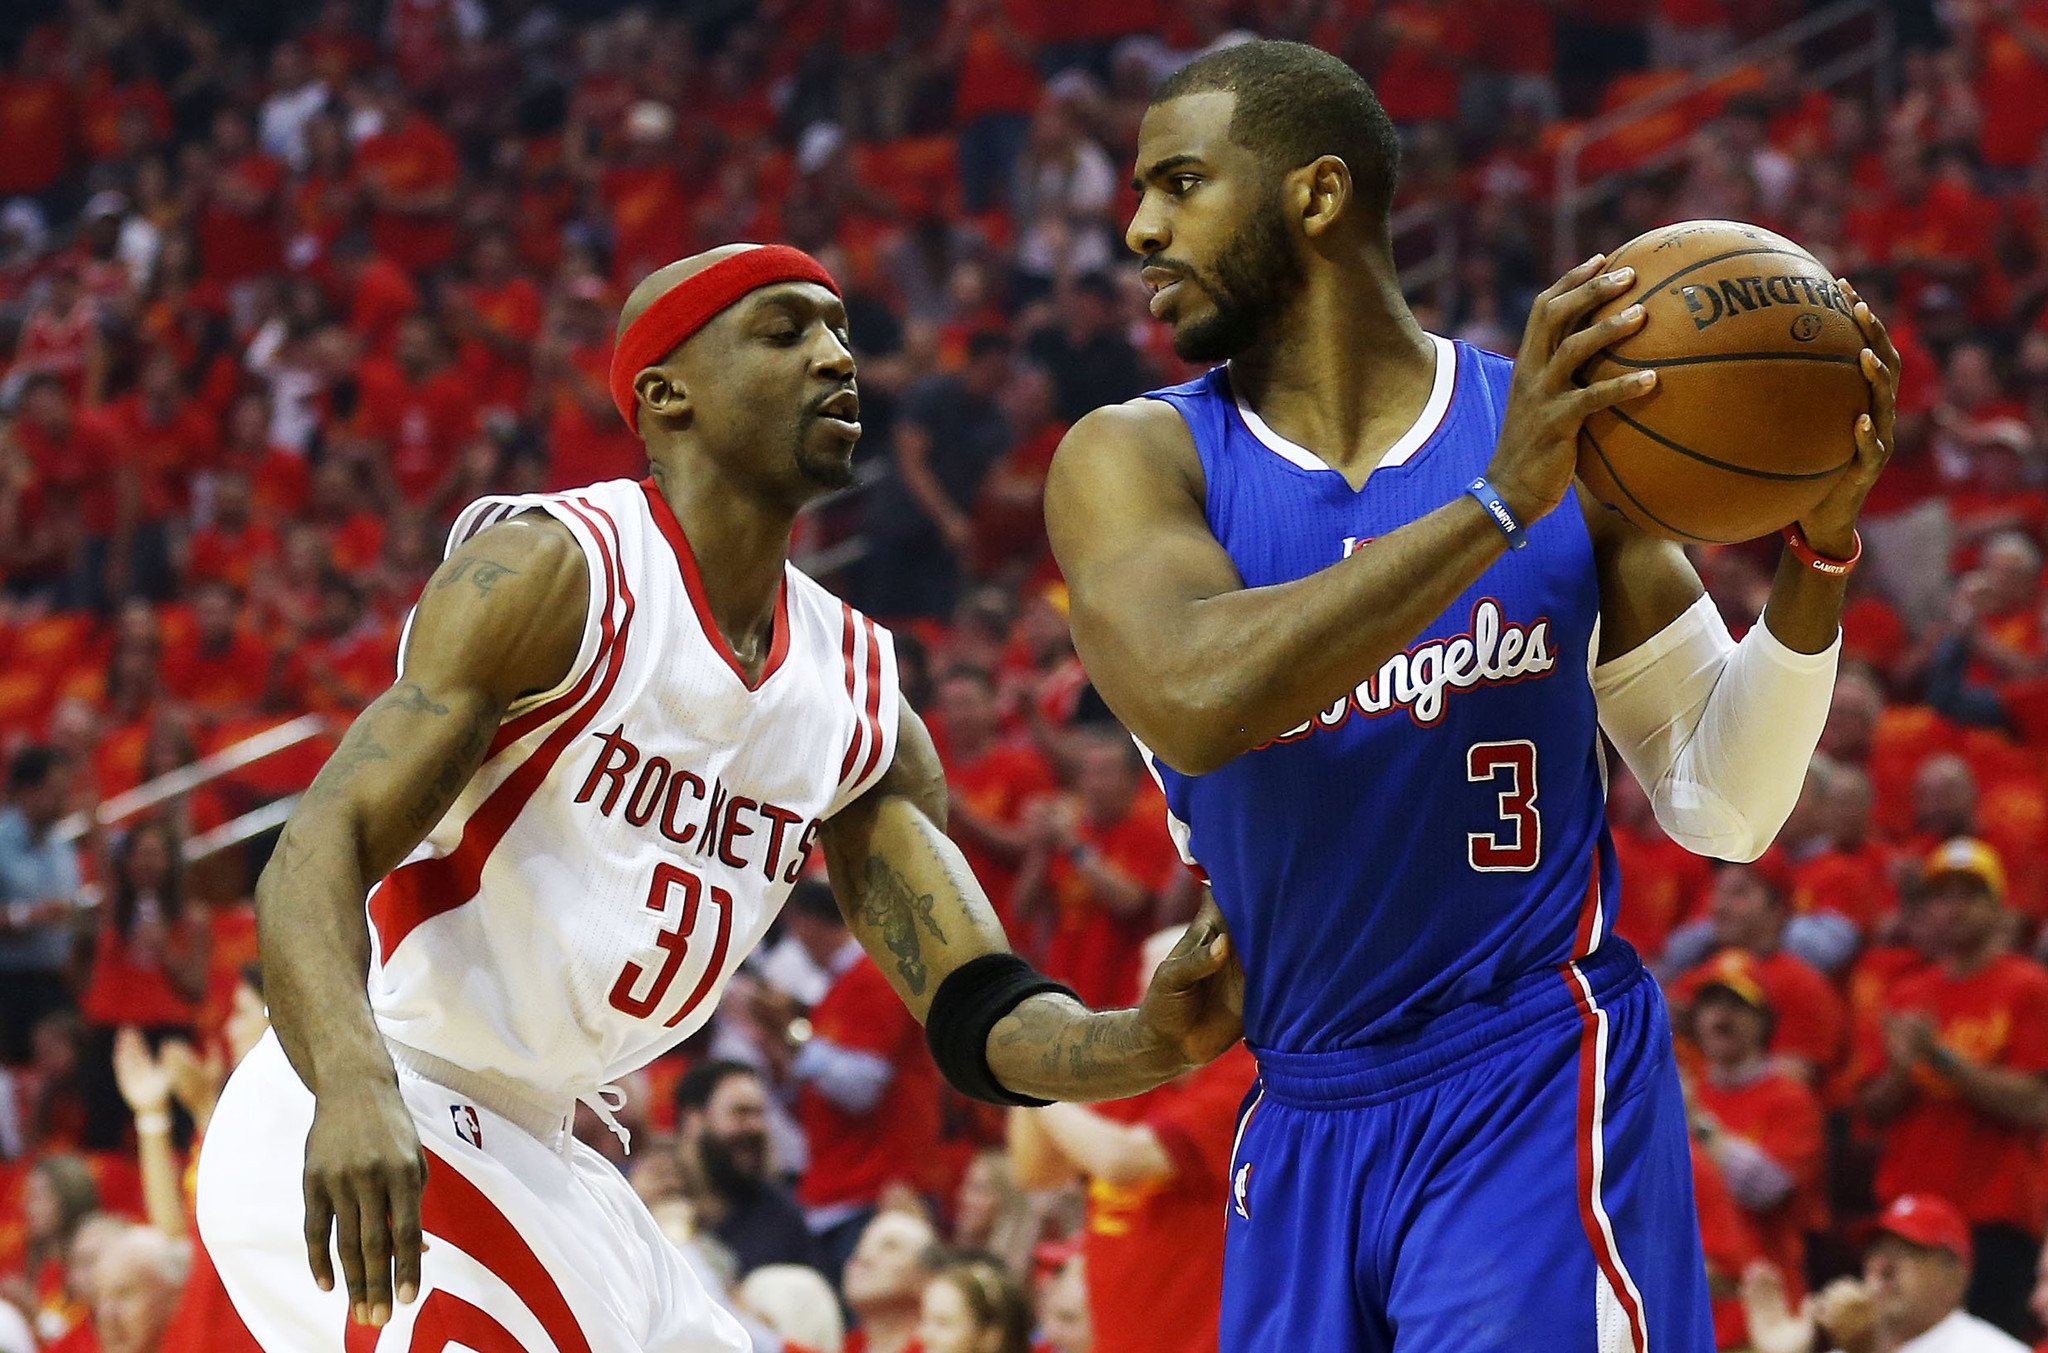 NBA Playoffs: Clippers fall in Game 7 to Rockets, 113-100 - LA Times